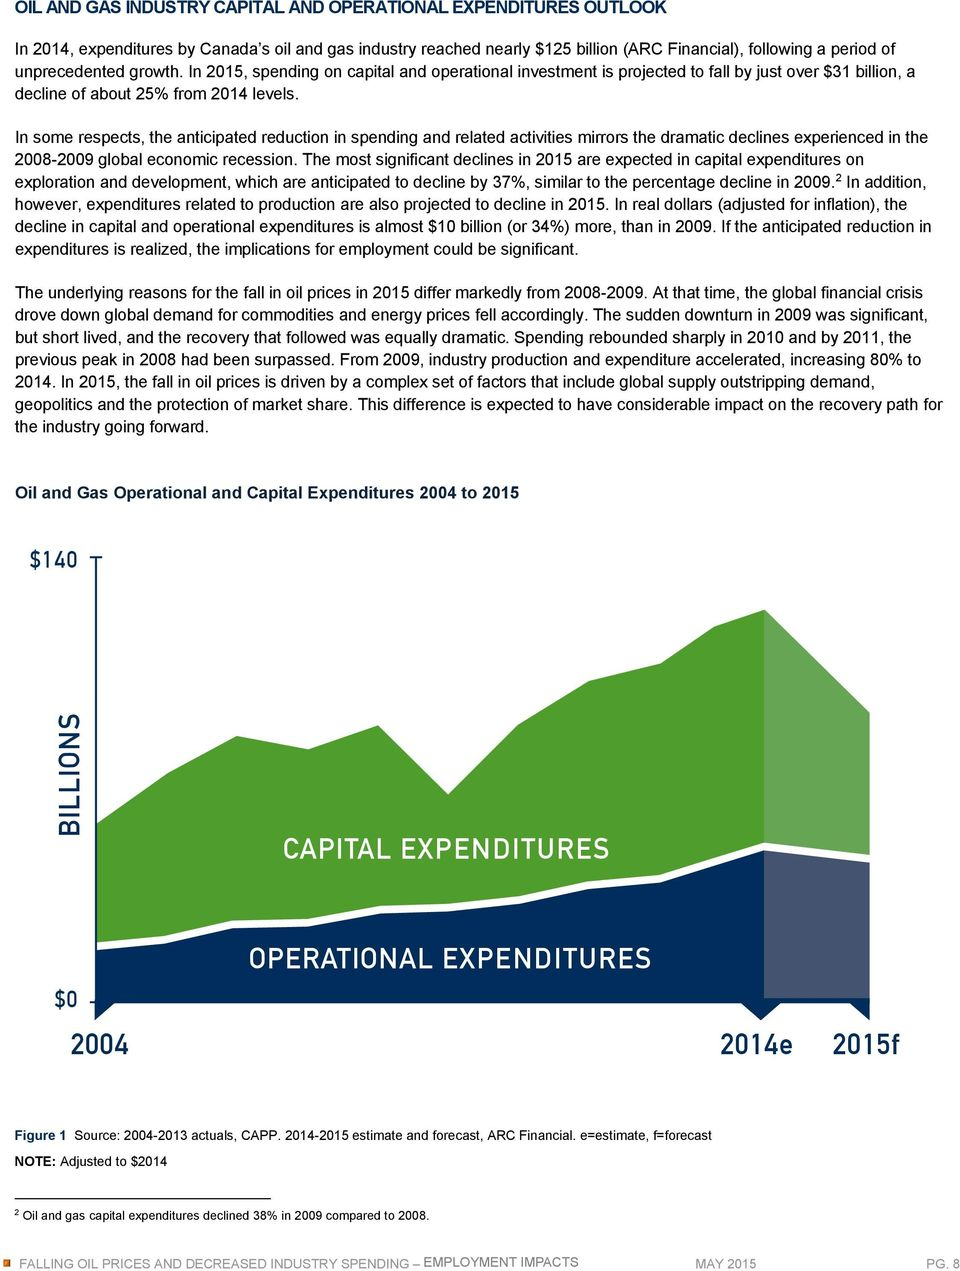 In by 2015, Canada s spending oil on capital industry operational reached nearly investment $125 billion is projected (ARC Financial), to fall by just following over $31 a period billion, a decline